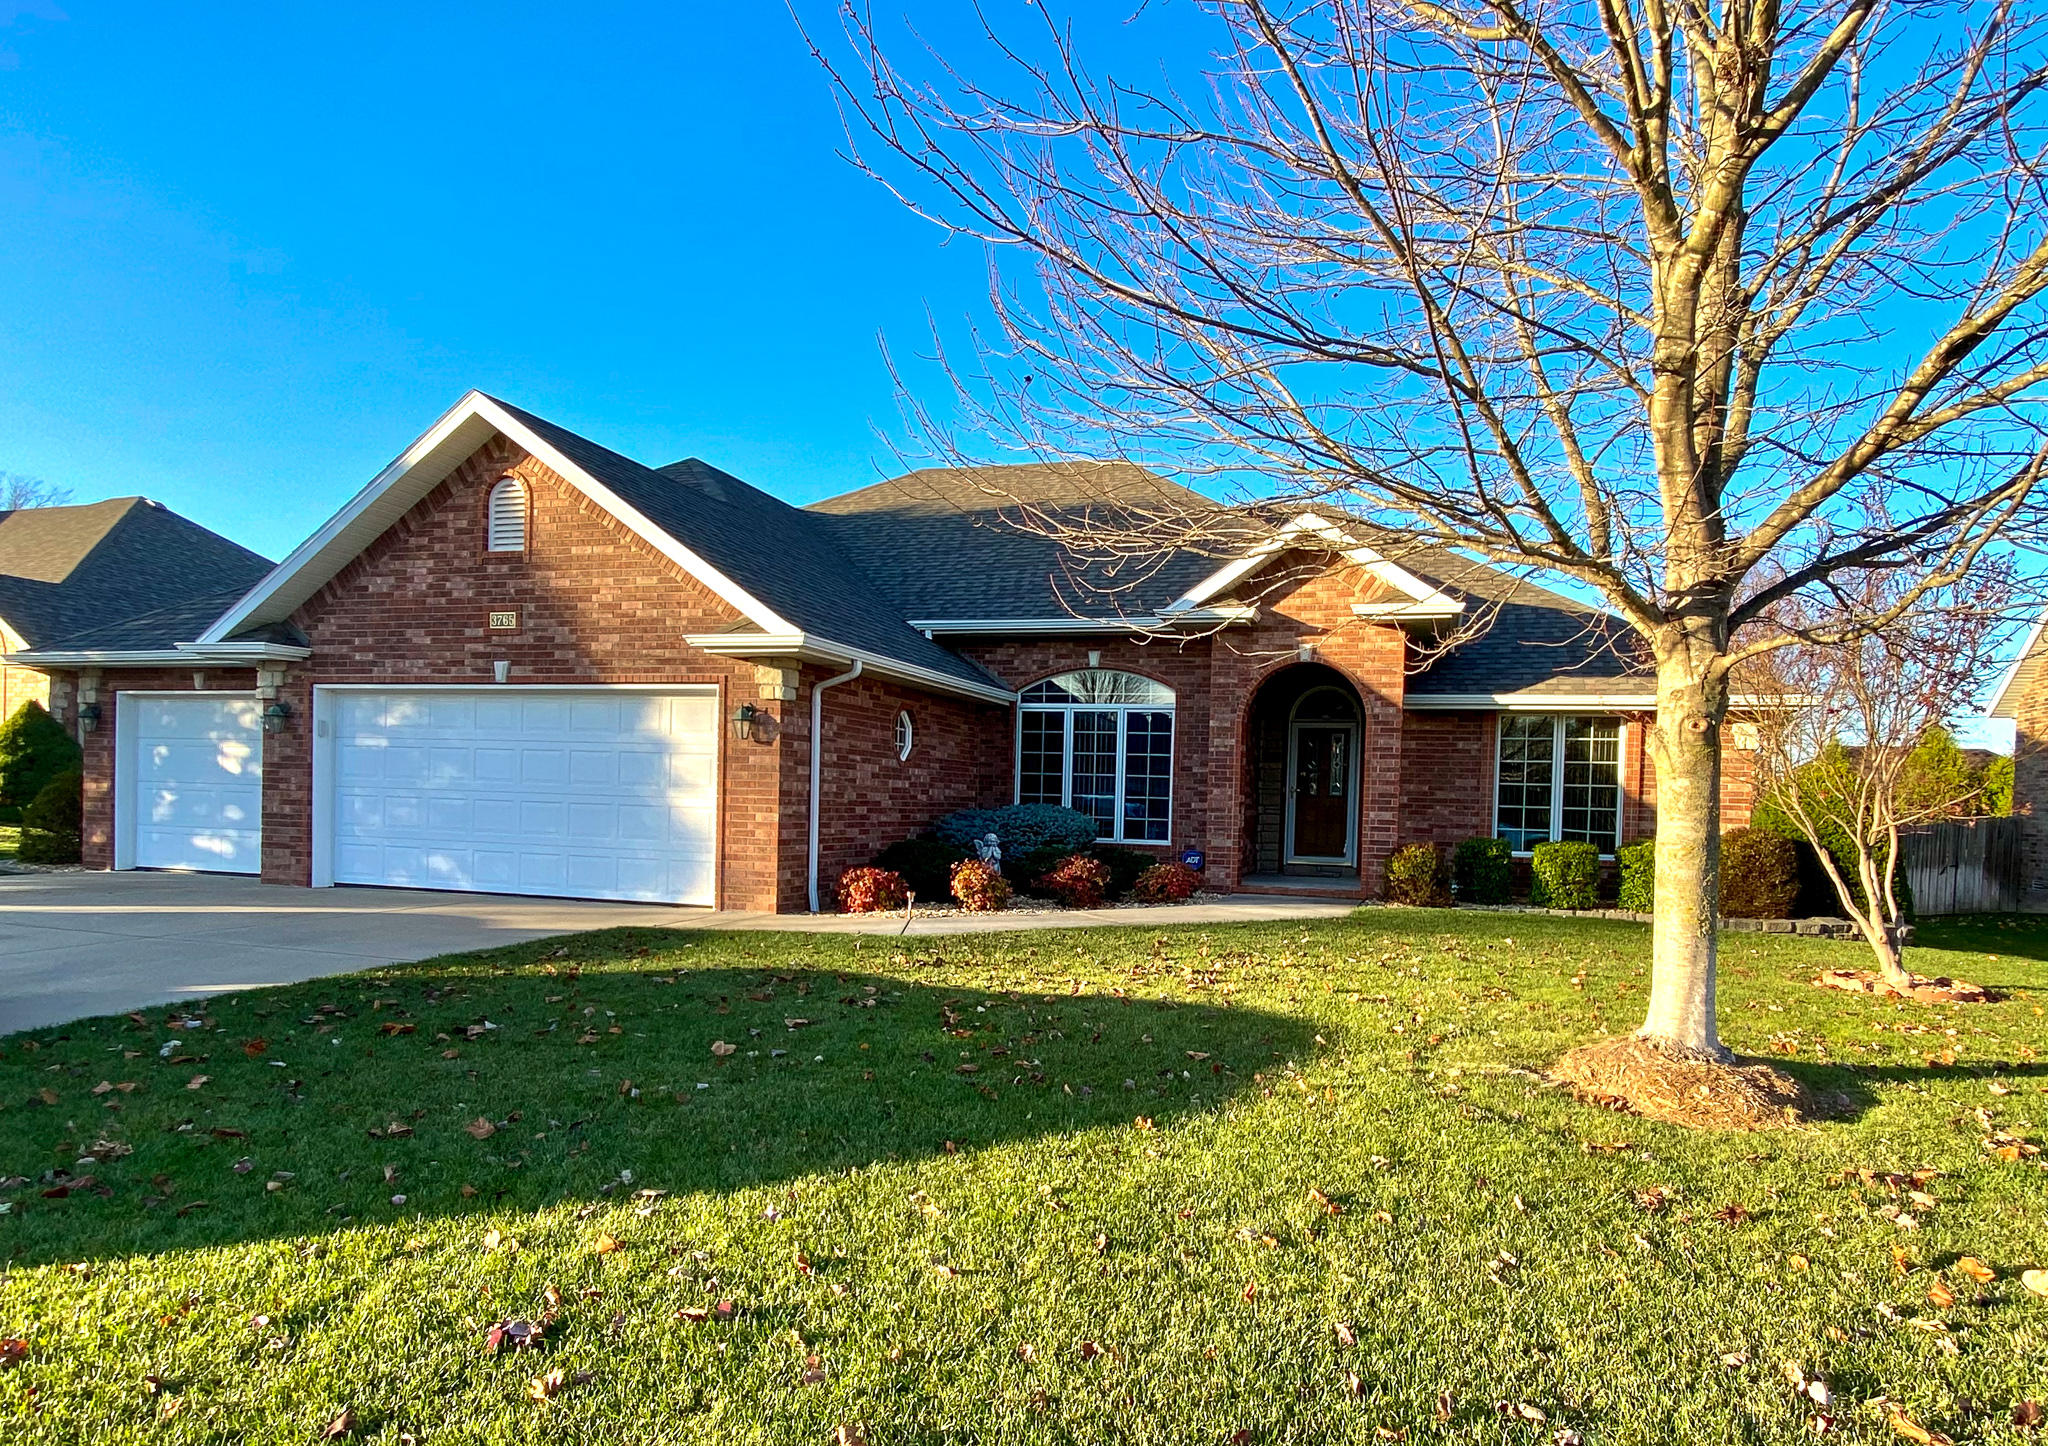 3765 West April Street Battlefield, MO 65619